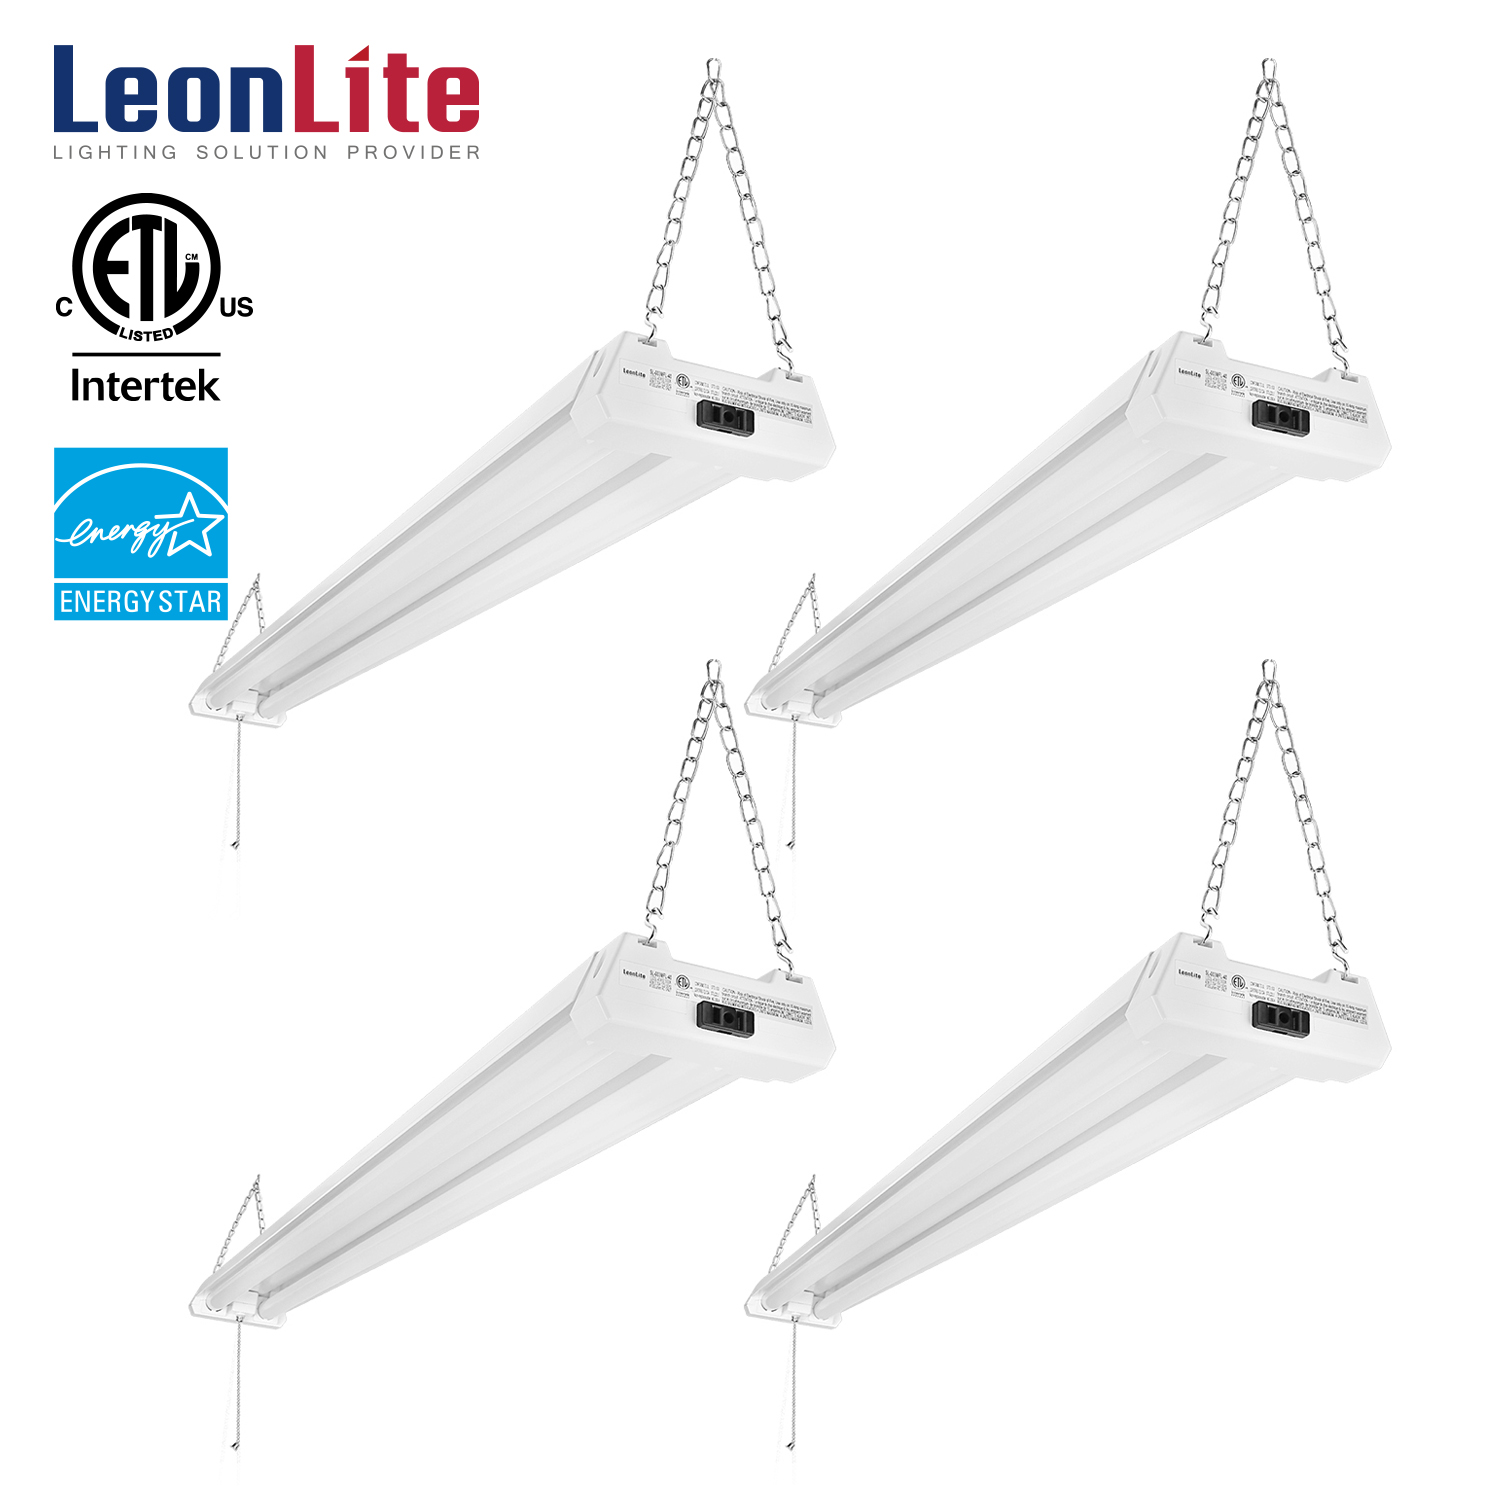 LEONLITE 4 Pack 4ft 40W LED Shop Light, Double Integrated LED Ceiling Fixture, 4000K Cool White